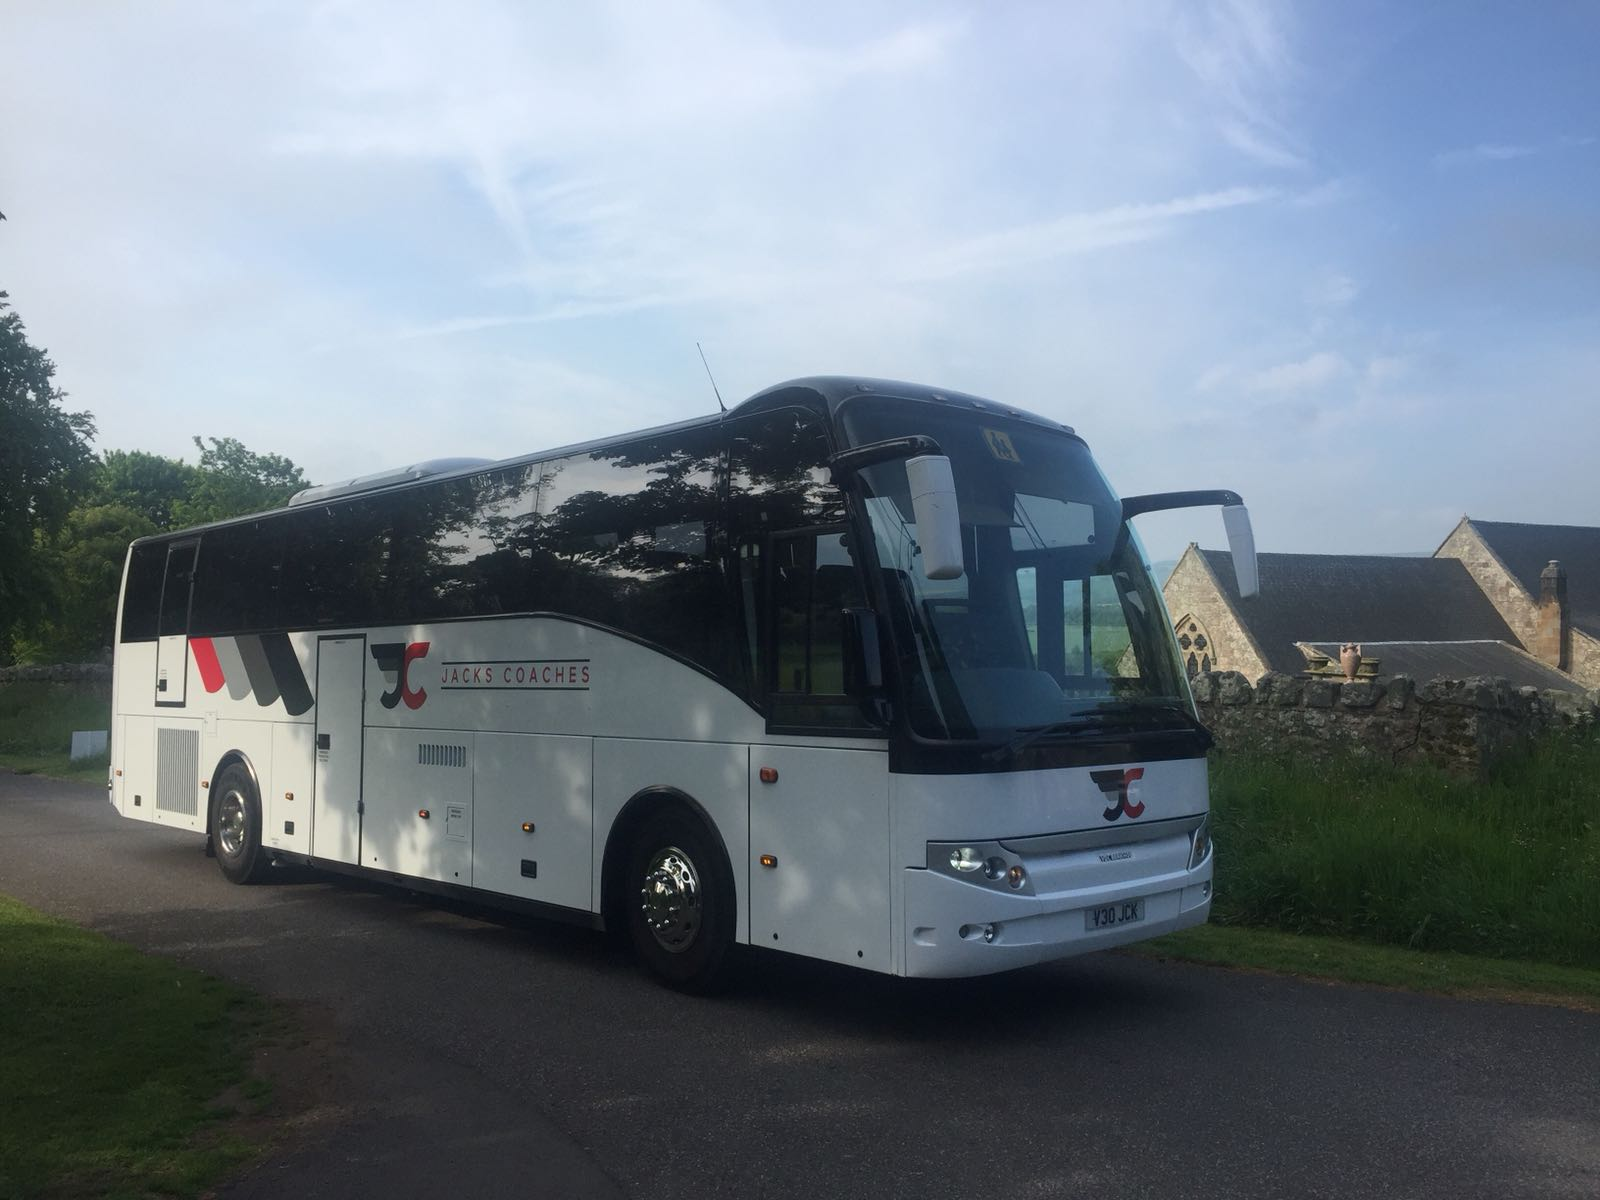 jacks coach hire stockton-on-tees